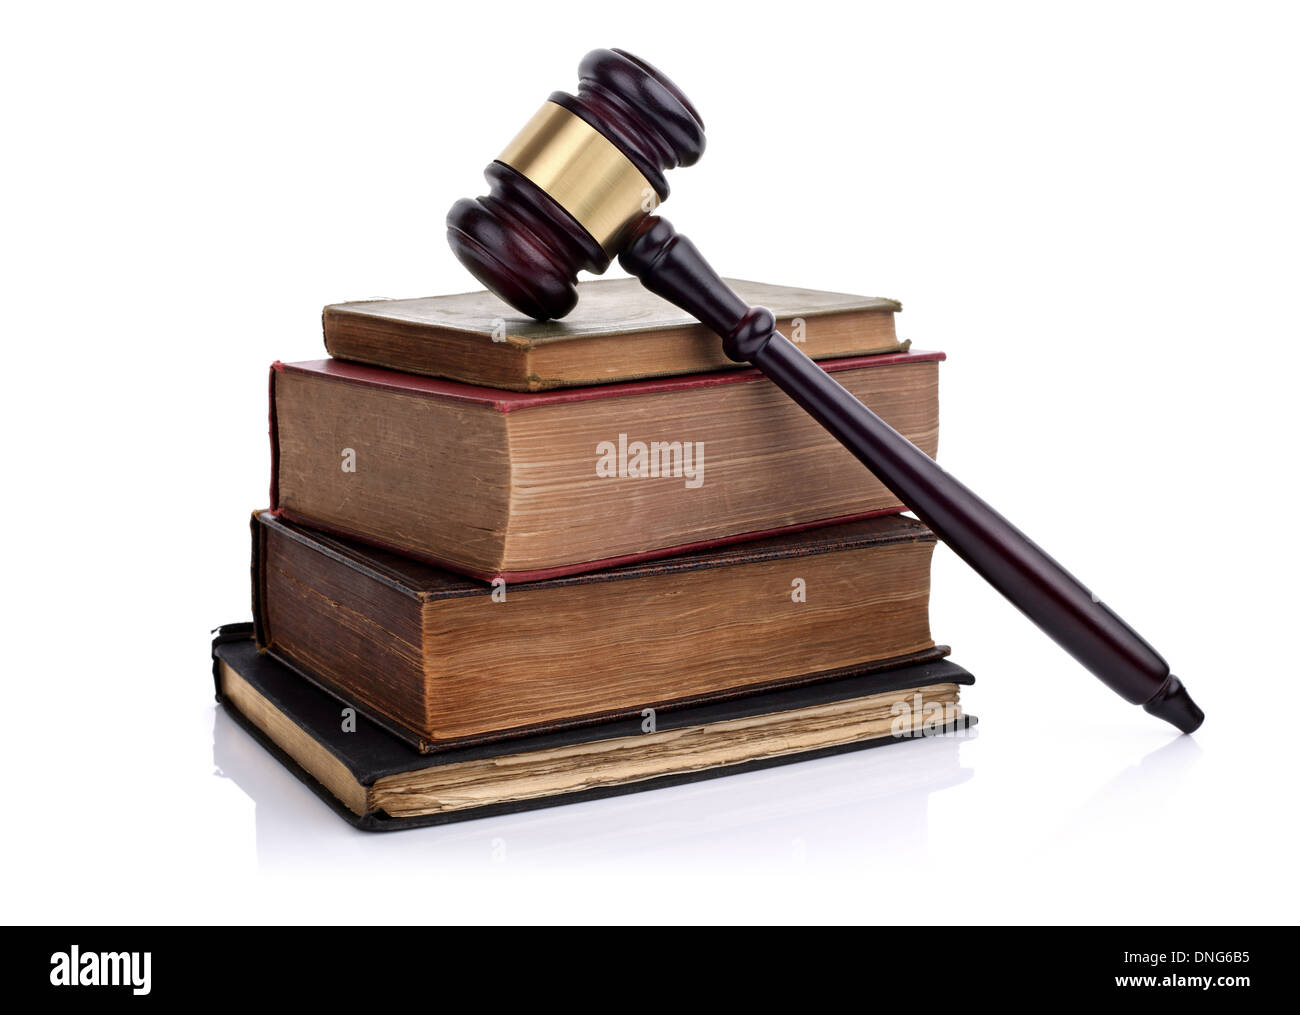 Gavel and law books - Stock Image